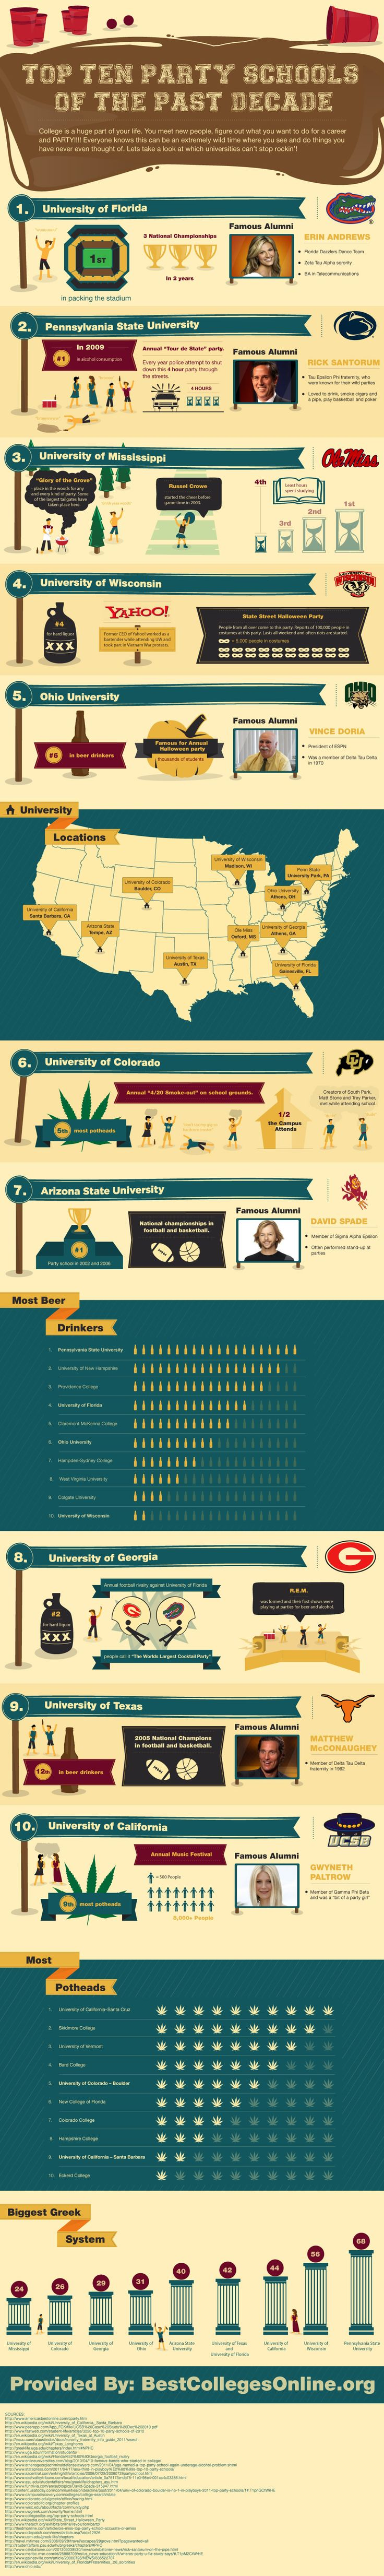 Best 25+ Top party colleges ideas on Pinterest | Ideas for ...